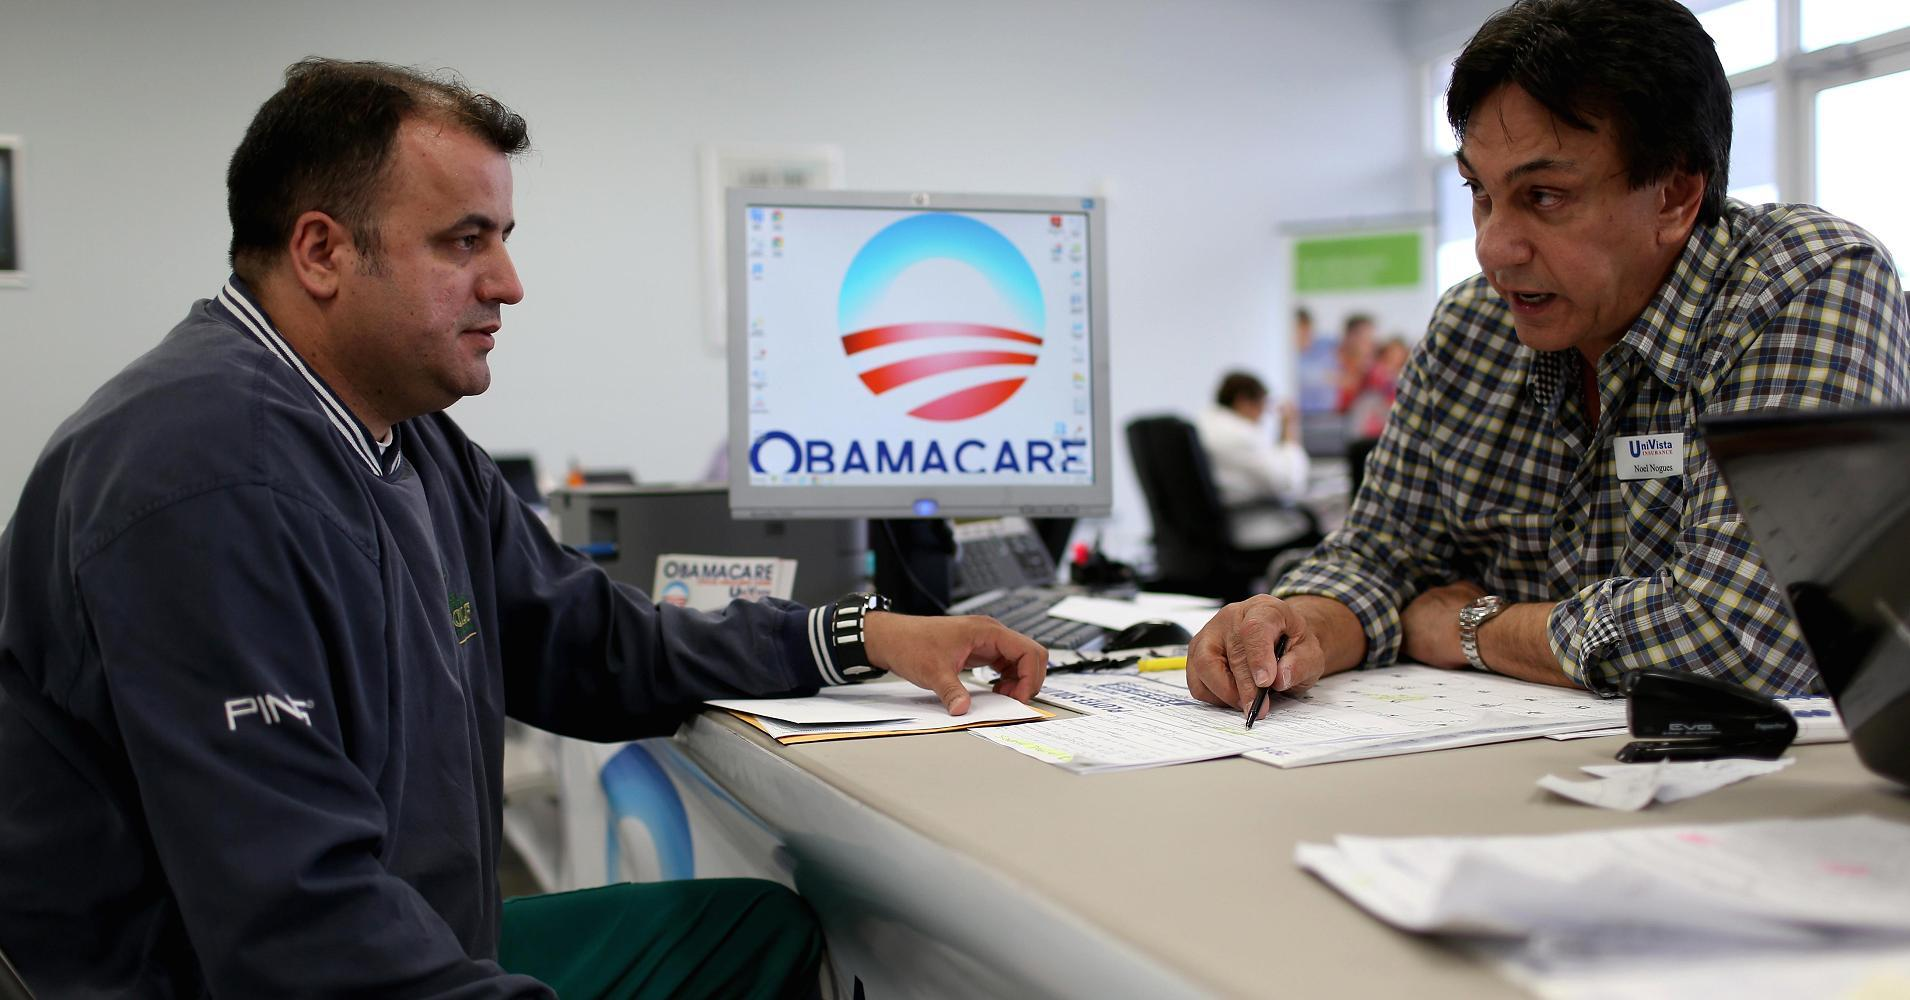 Here's what Obamacare customers think...